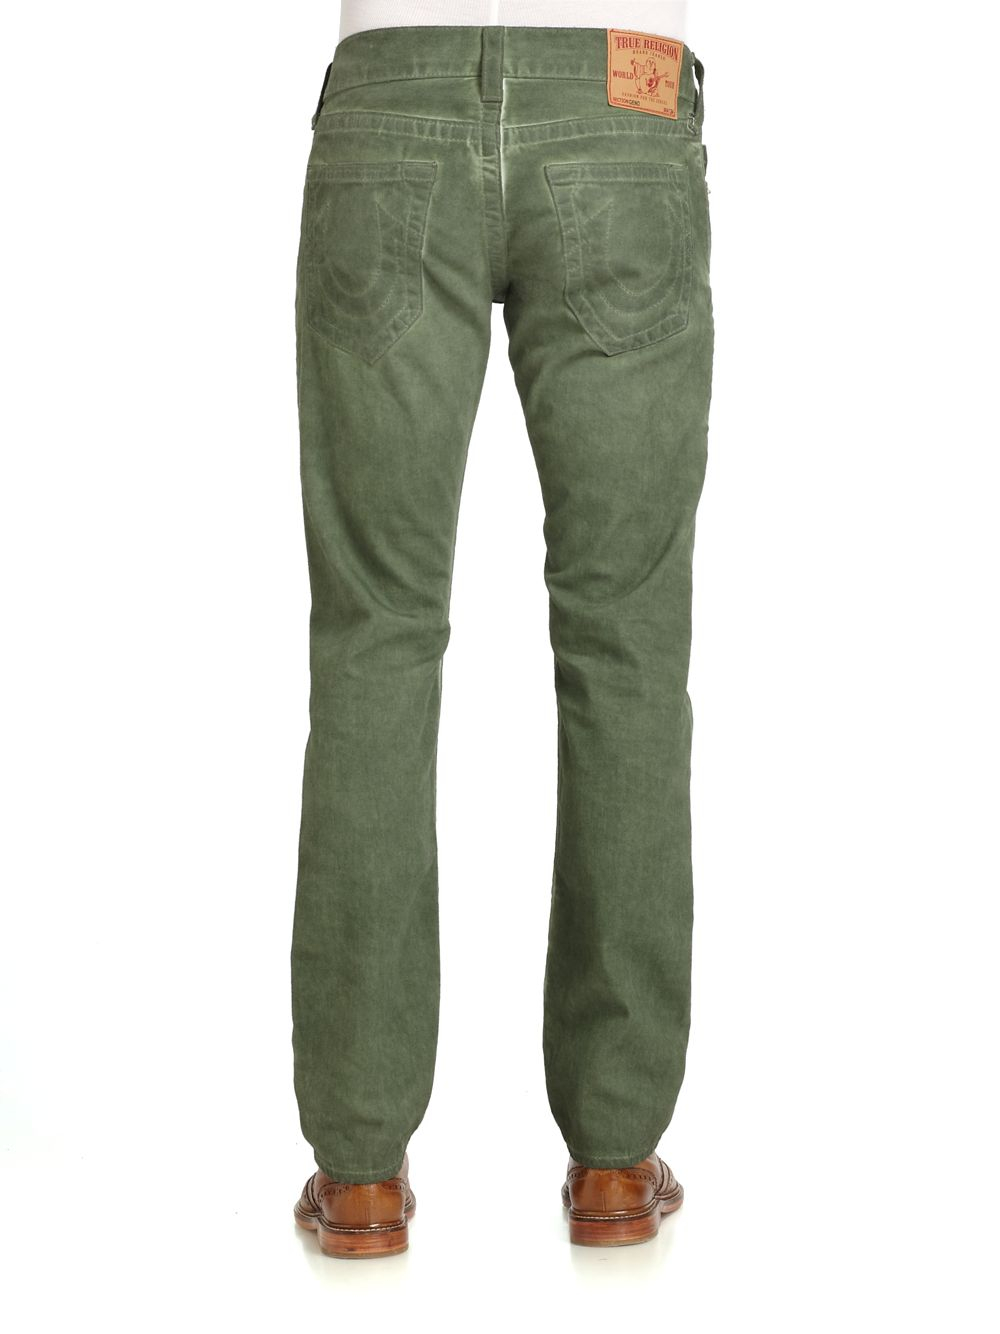 True religion Coldpressed Cotton Denim Jeans in Green for ... - photo#8